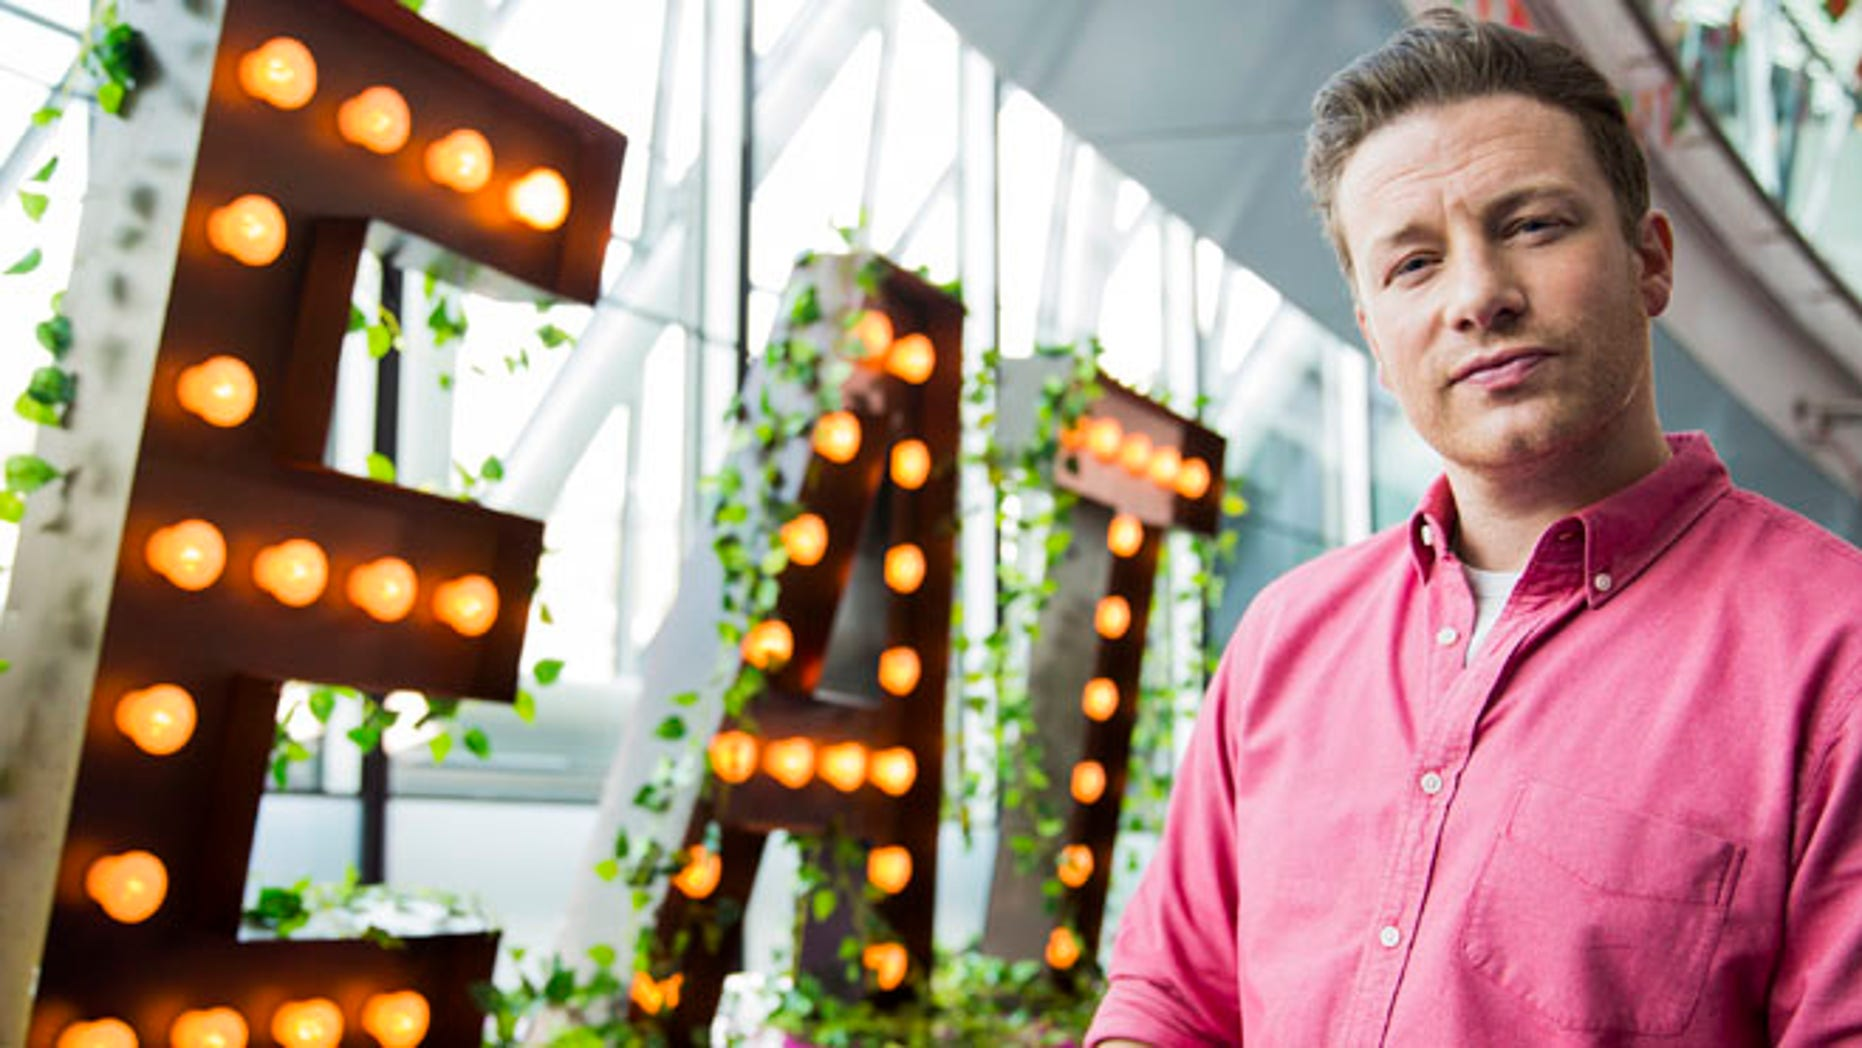 LONDON, ENGLAND - MAY 16:  Jamie Oliver broadcasts a live cooking class from City Hall  to school children across the globe as part of the third annual Food Revolution Day on May 16, 2014 in London, England.  (Photo by Tristan Fewings/Getty Images)